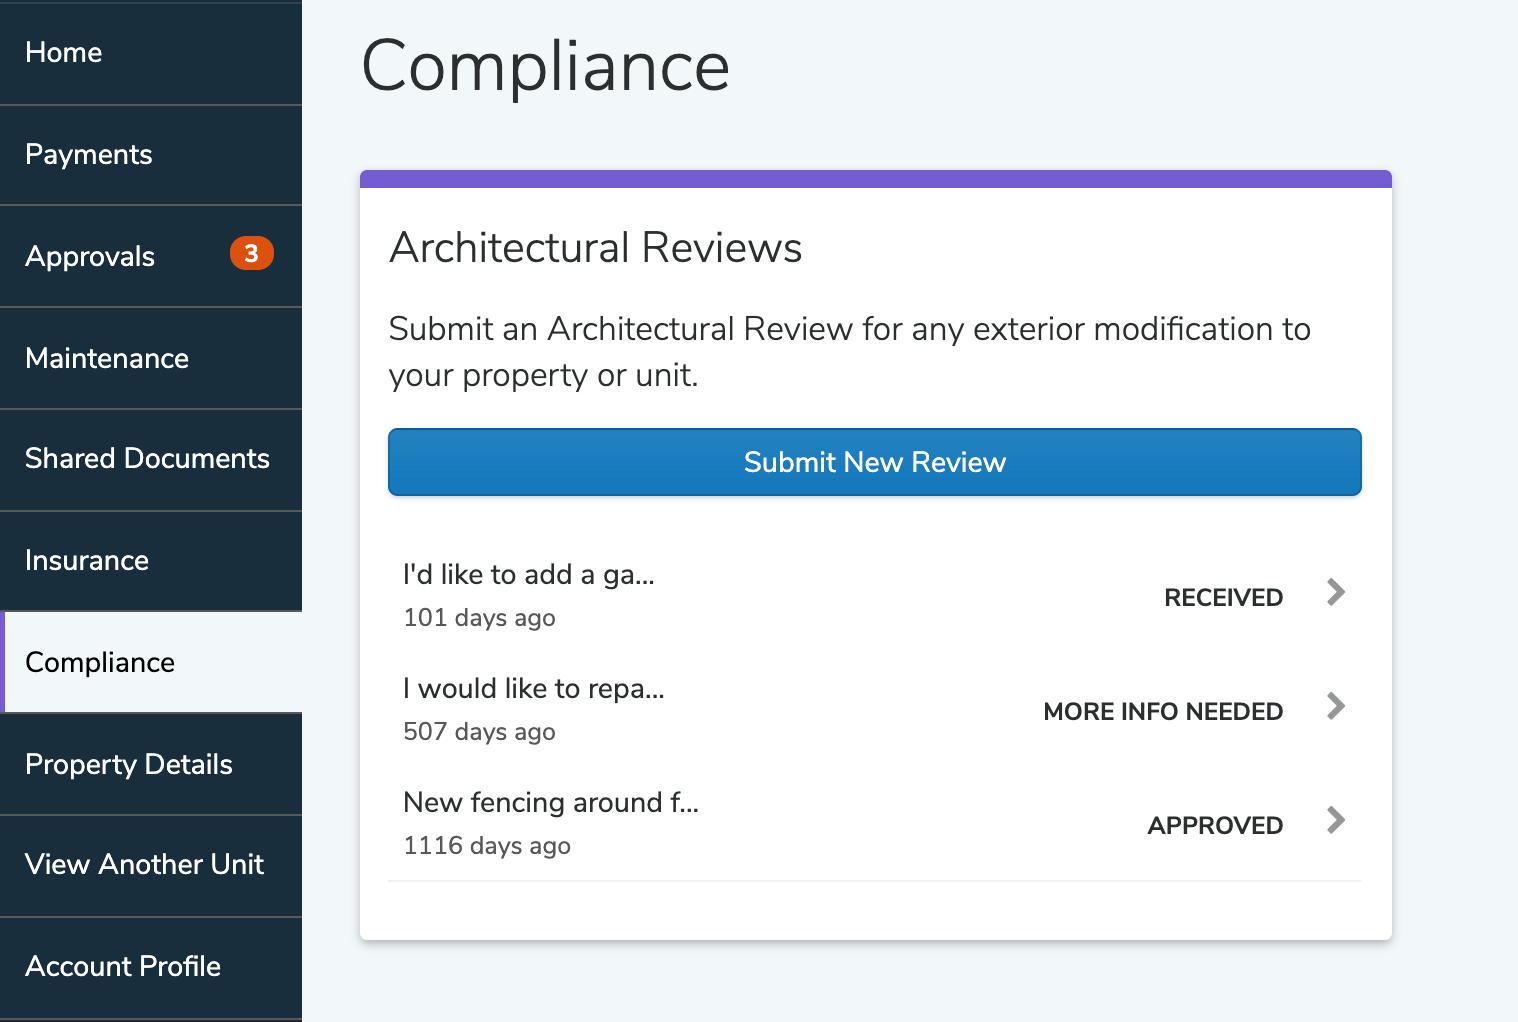 Architectural-review-compliance